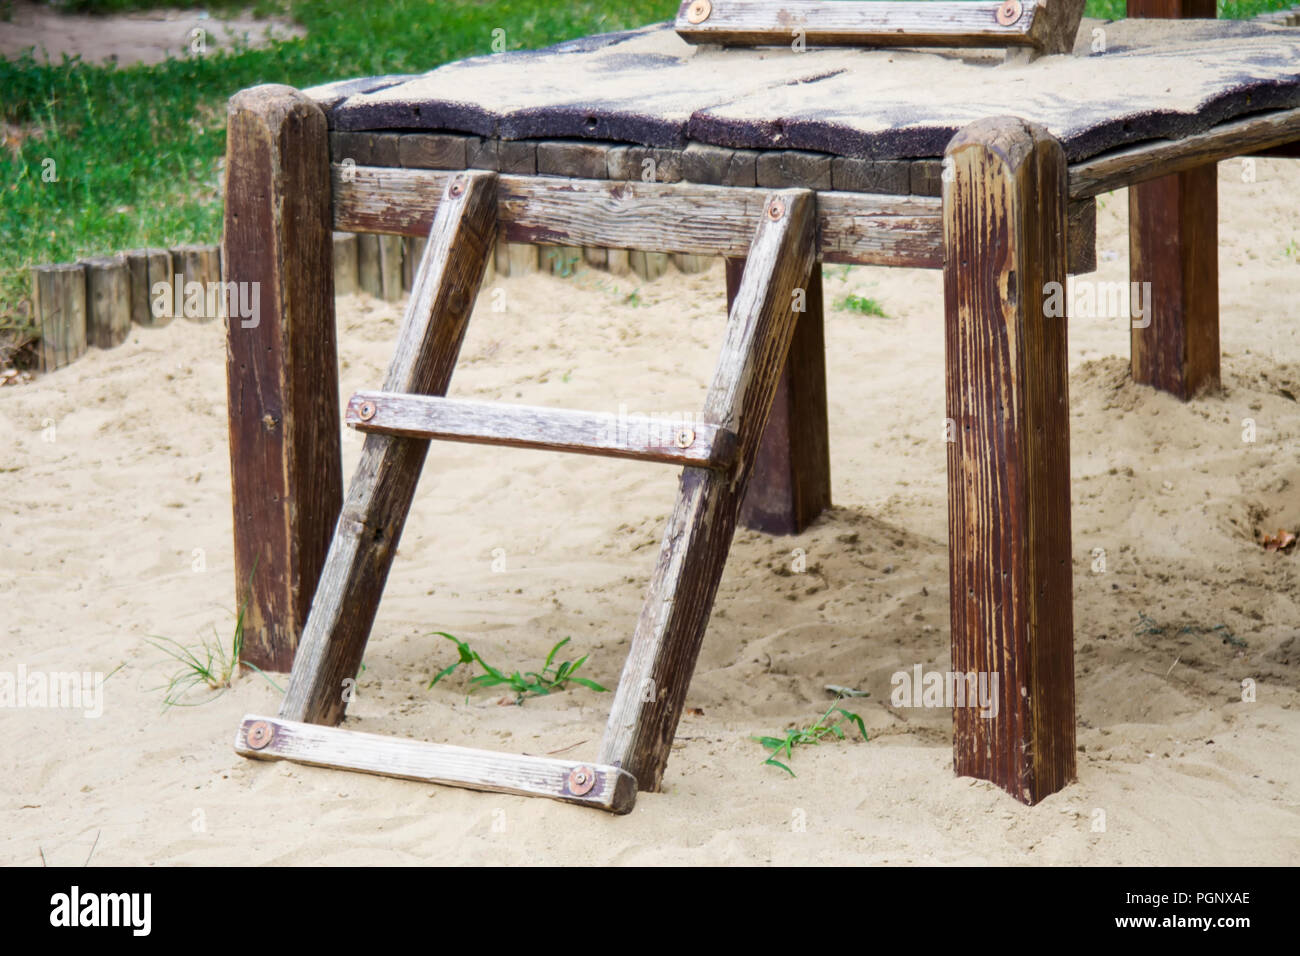 Aged, worn wooden ladder at the playground in the sandbox. Stock Photo